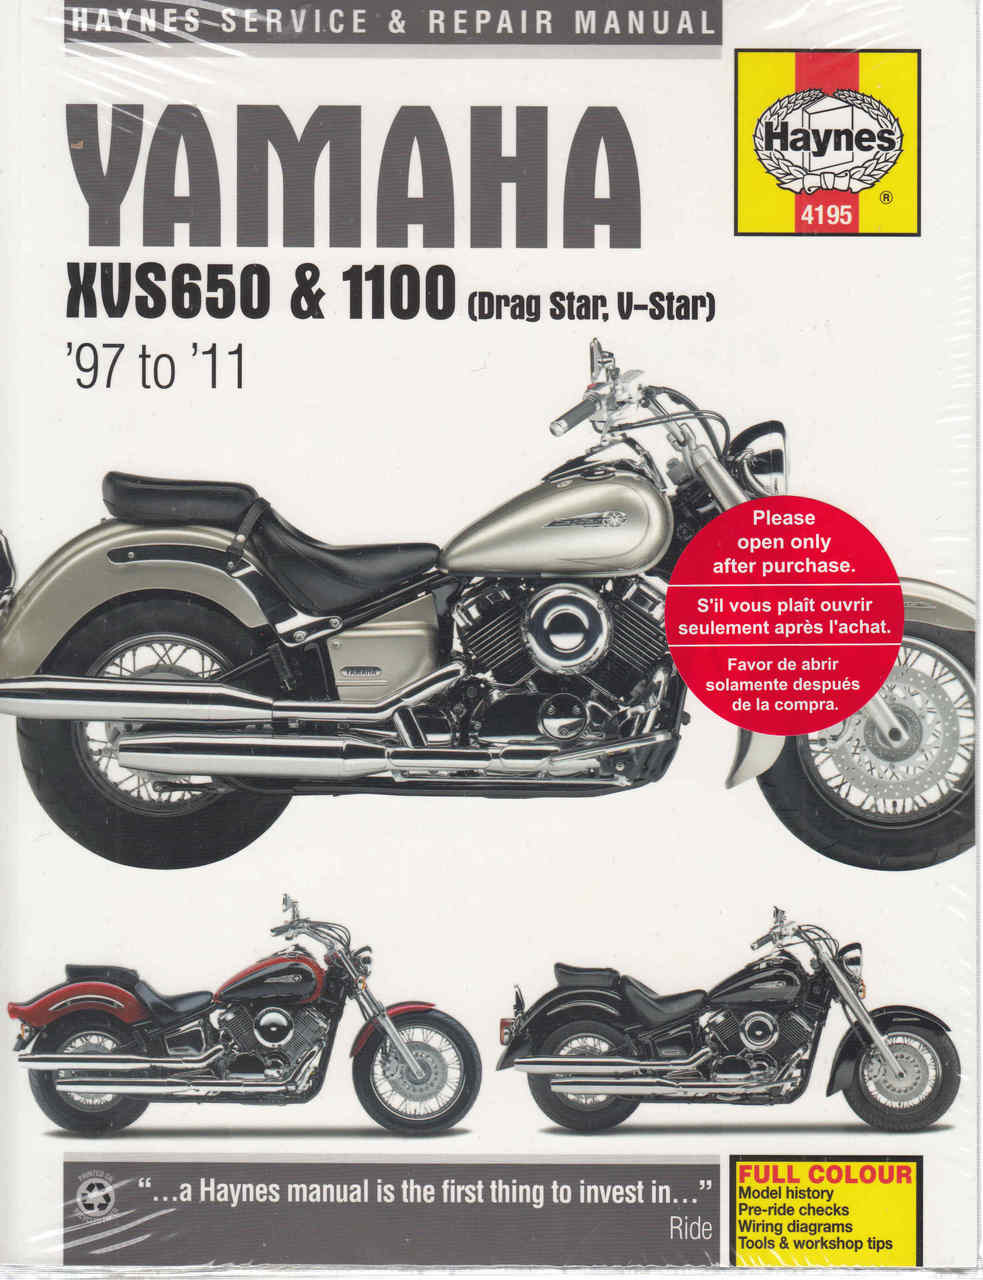 2005 Yamaha V Star 650 Classic Service Manual Motorcycle Wiring Diagrams Custom Image Not Found Or Type Unknown Clymer Repair